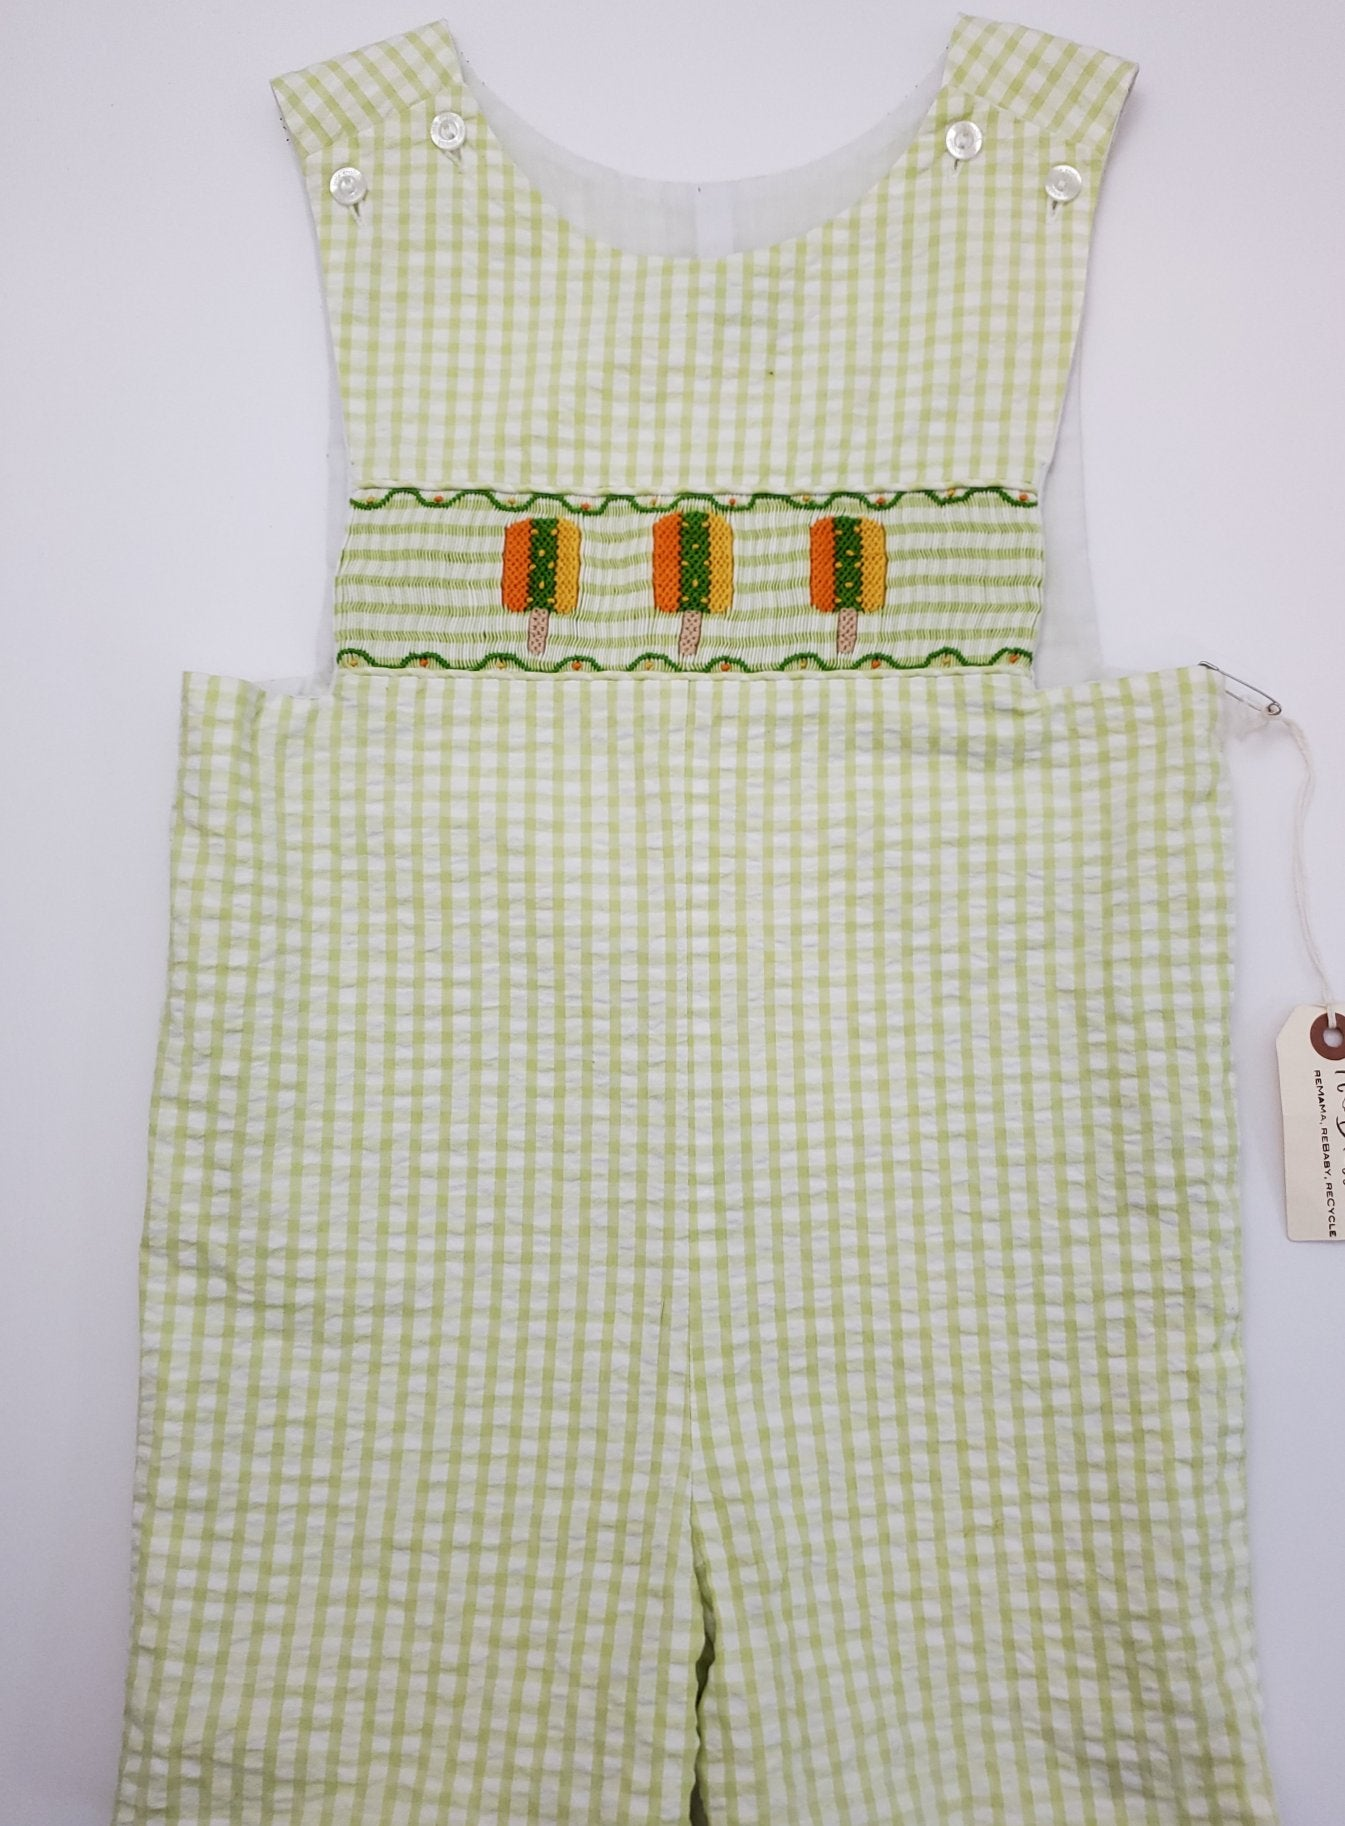 Resale 4T Green Gingham Popsicle Overall Jumper